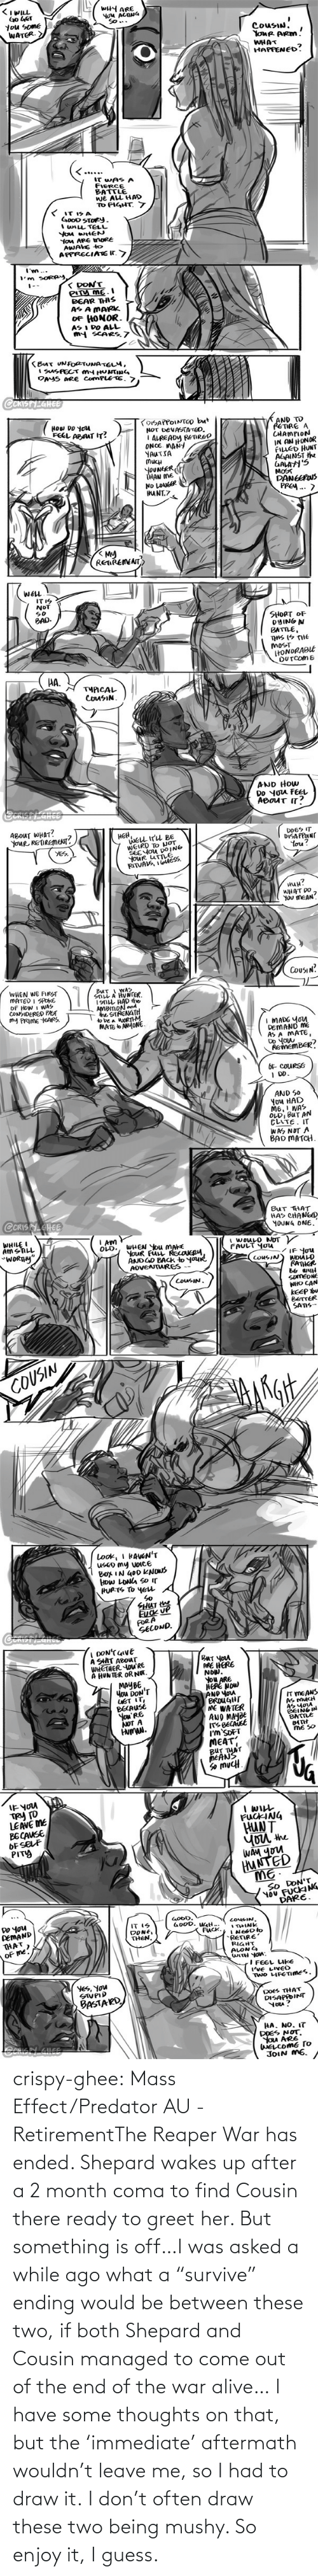 "i guess: crispy-ghee:  Mass Effect/Predator AU - RetirementThe Reaper War has ended. Shepard wakes up after a 2 month coma to find Cousin there ready to greet her. But something is off…I was asked a while ago what a ""survive"" ending would be between these two, if both Shepard and Cousin managed to come out of the end of the war alive… I have some thoughts on that, but the 'immediate' aftermath wouldn't leave me, so I had to draw it. I don't often draw these two being mushy. So enjoy it, I guess."